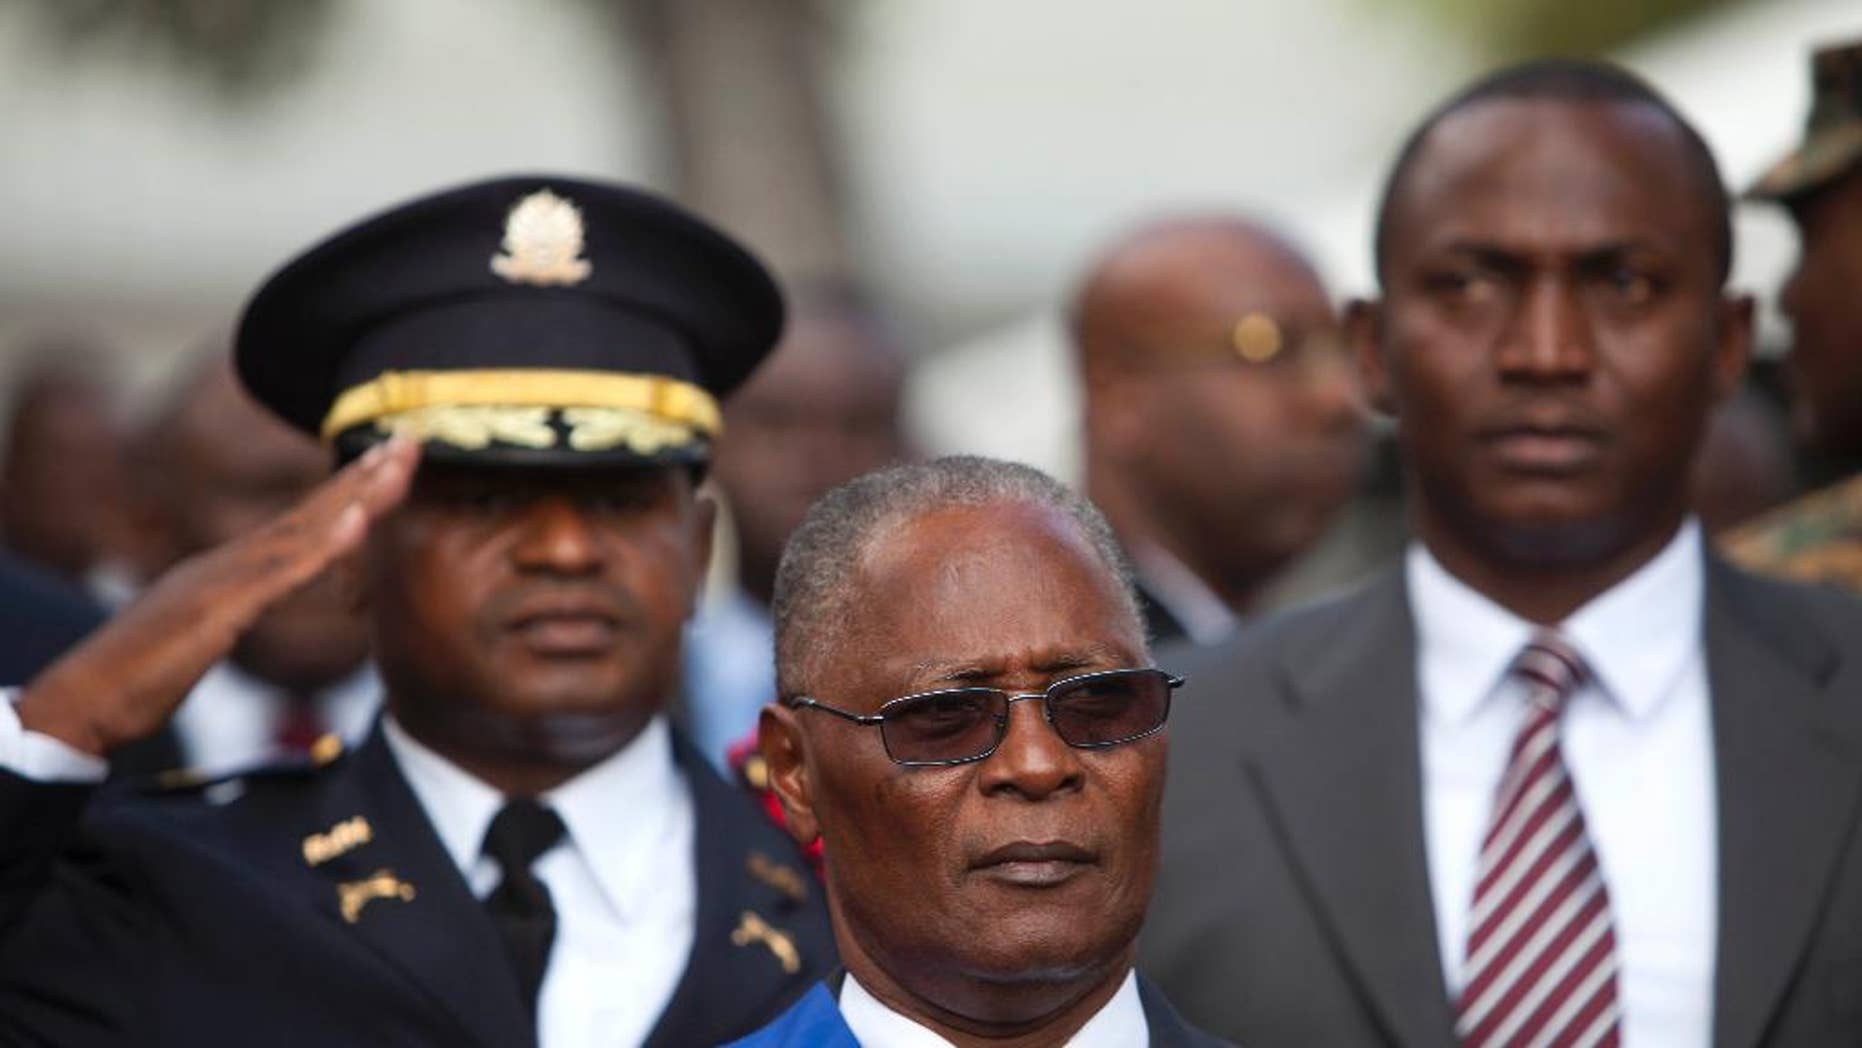 FILE - In this Feb. 14, 2016, file photo, Haiti's provisional President Jocelerme Privert stands for the national anthem after delivering his speech at an installation ceremony, in Port-au-Prince, Haiti. Haiti's deeply divided lawmakers met at the National Assembly but were unable to make progress toward a vote on the interim president's mandate which expired two weeks ago. The fruitless session began Tuesday, June 28 and was adjourned early Wednesday. (AP Photo/Dieu Nalio Chery, File)